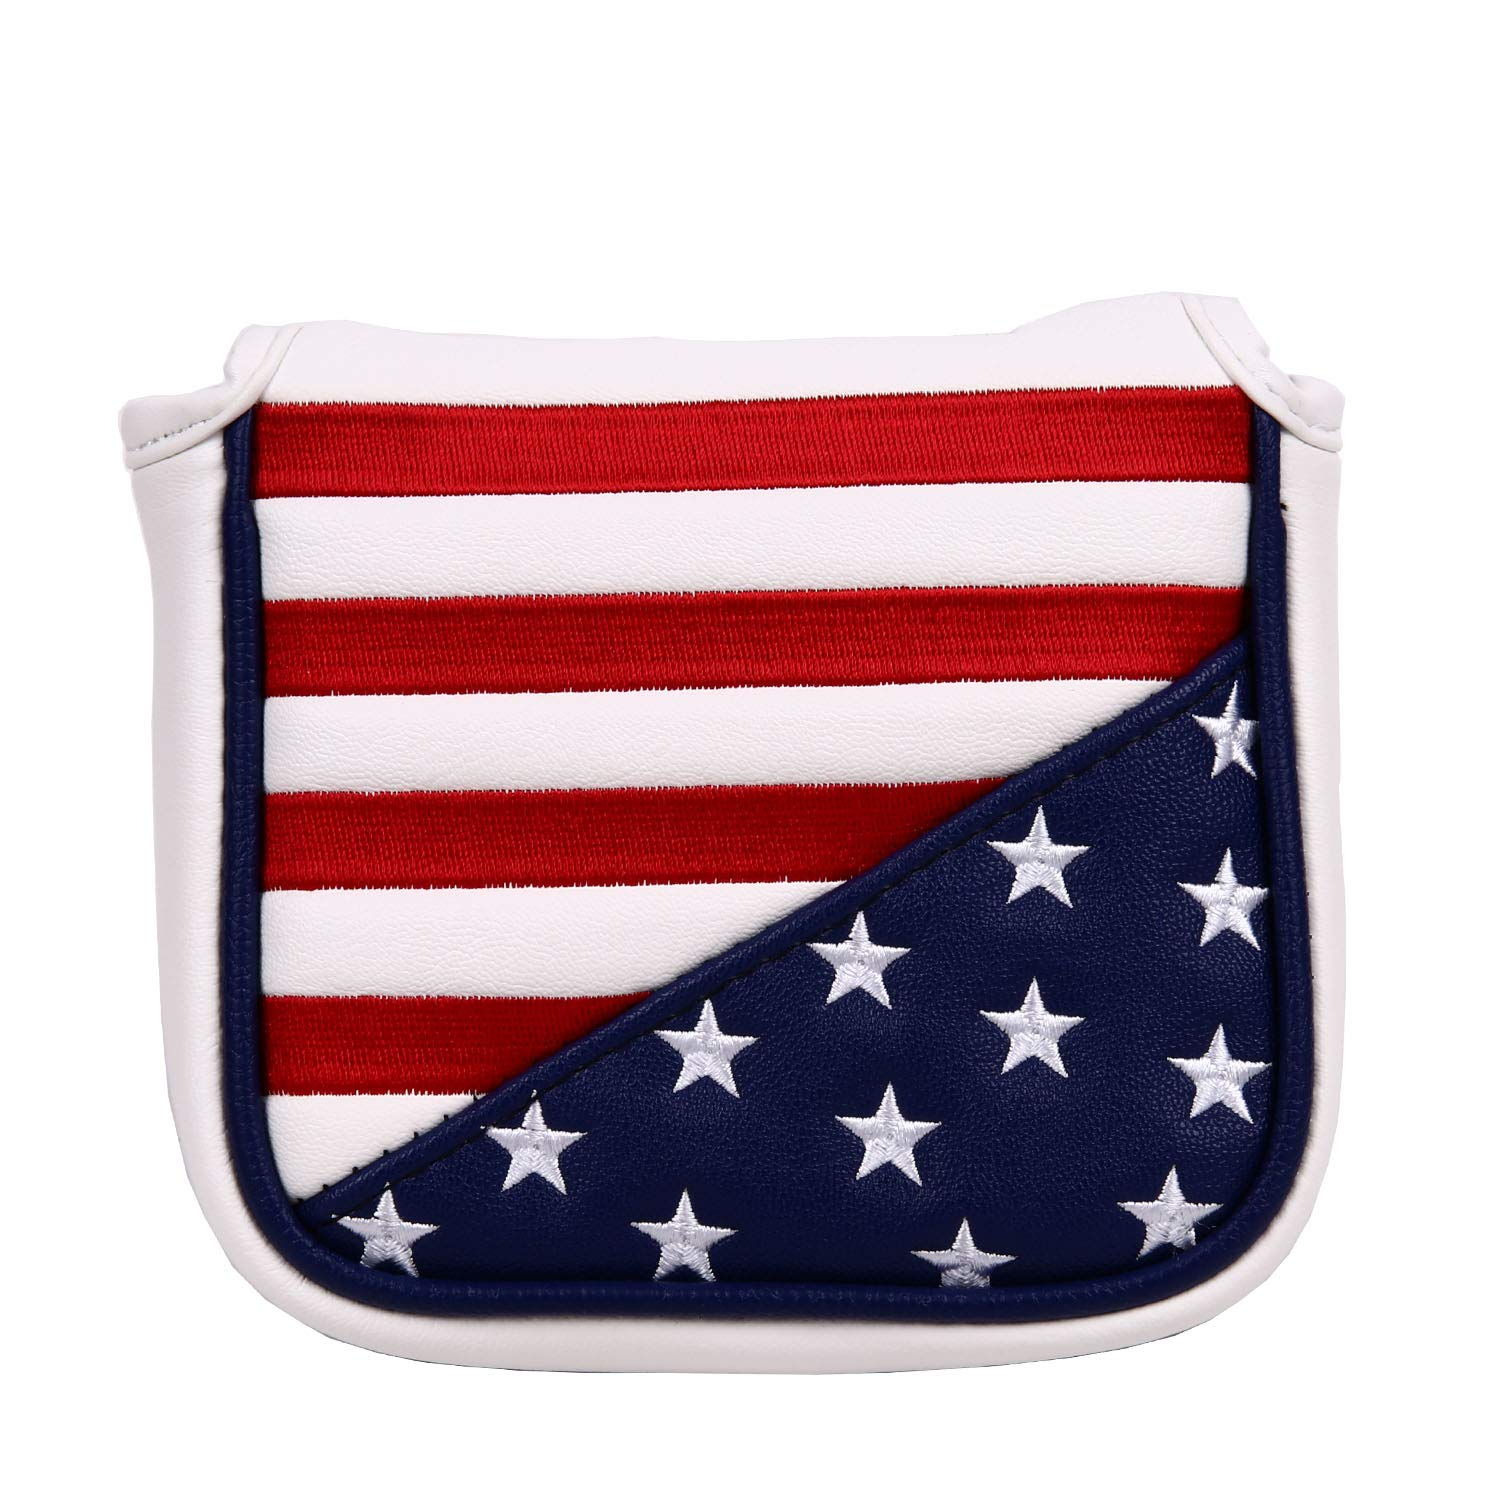 USA Stars and Stripes Square Mallet Shaped Magnetic Closure Golf Putter Head Cover for Scotty Cameron Golf Builder by Sword &Shield sports